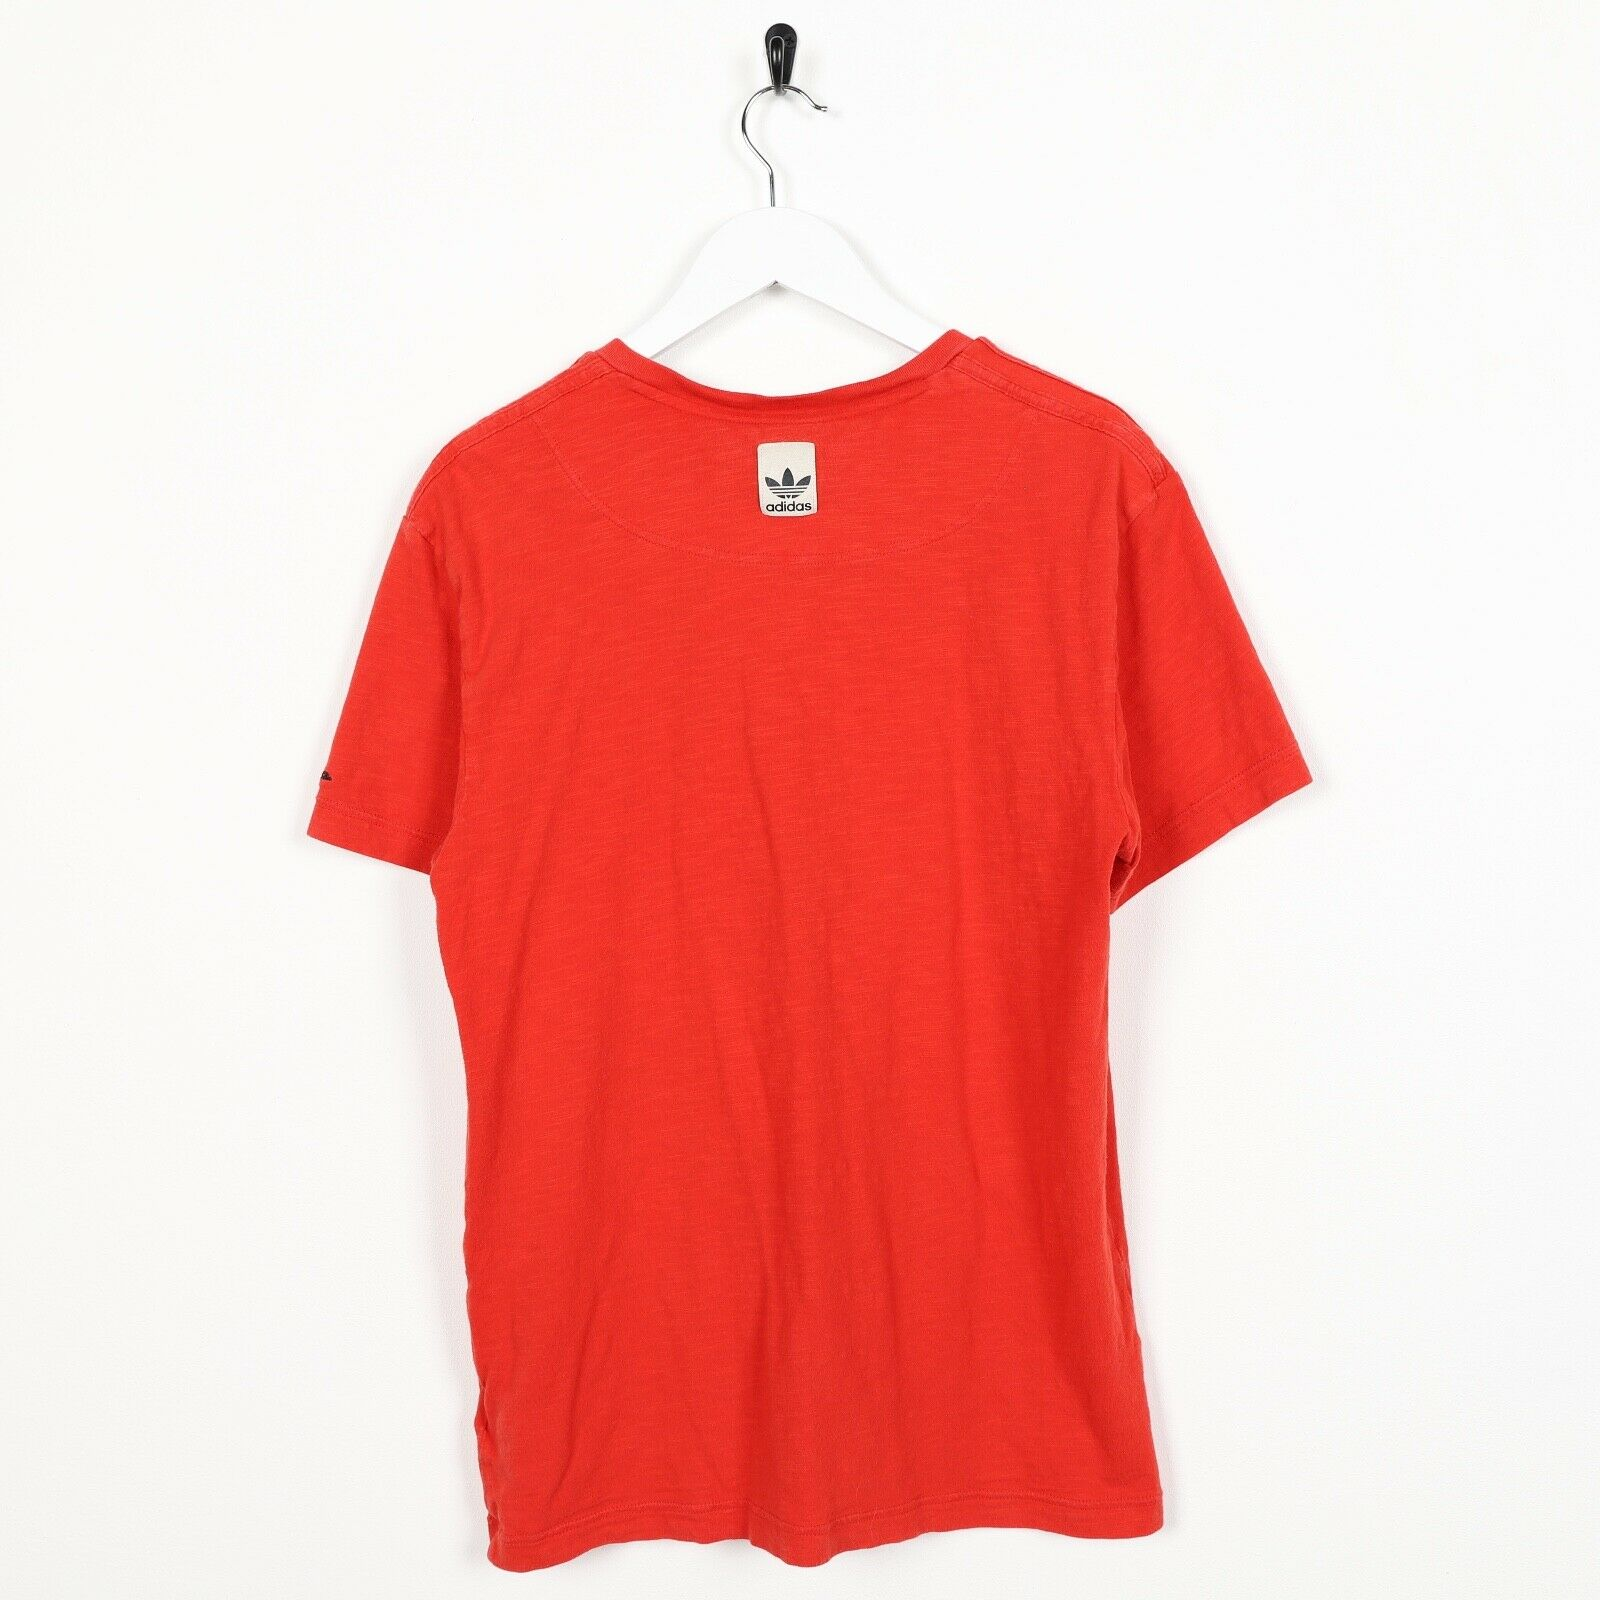 Vintage ADIDAS ORIGINALS Graphic Logo T Shirt Tee Red | Medium M